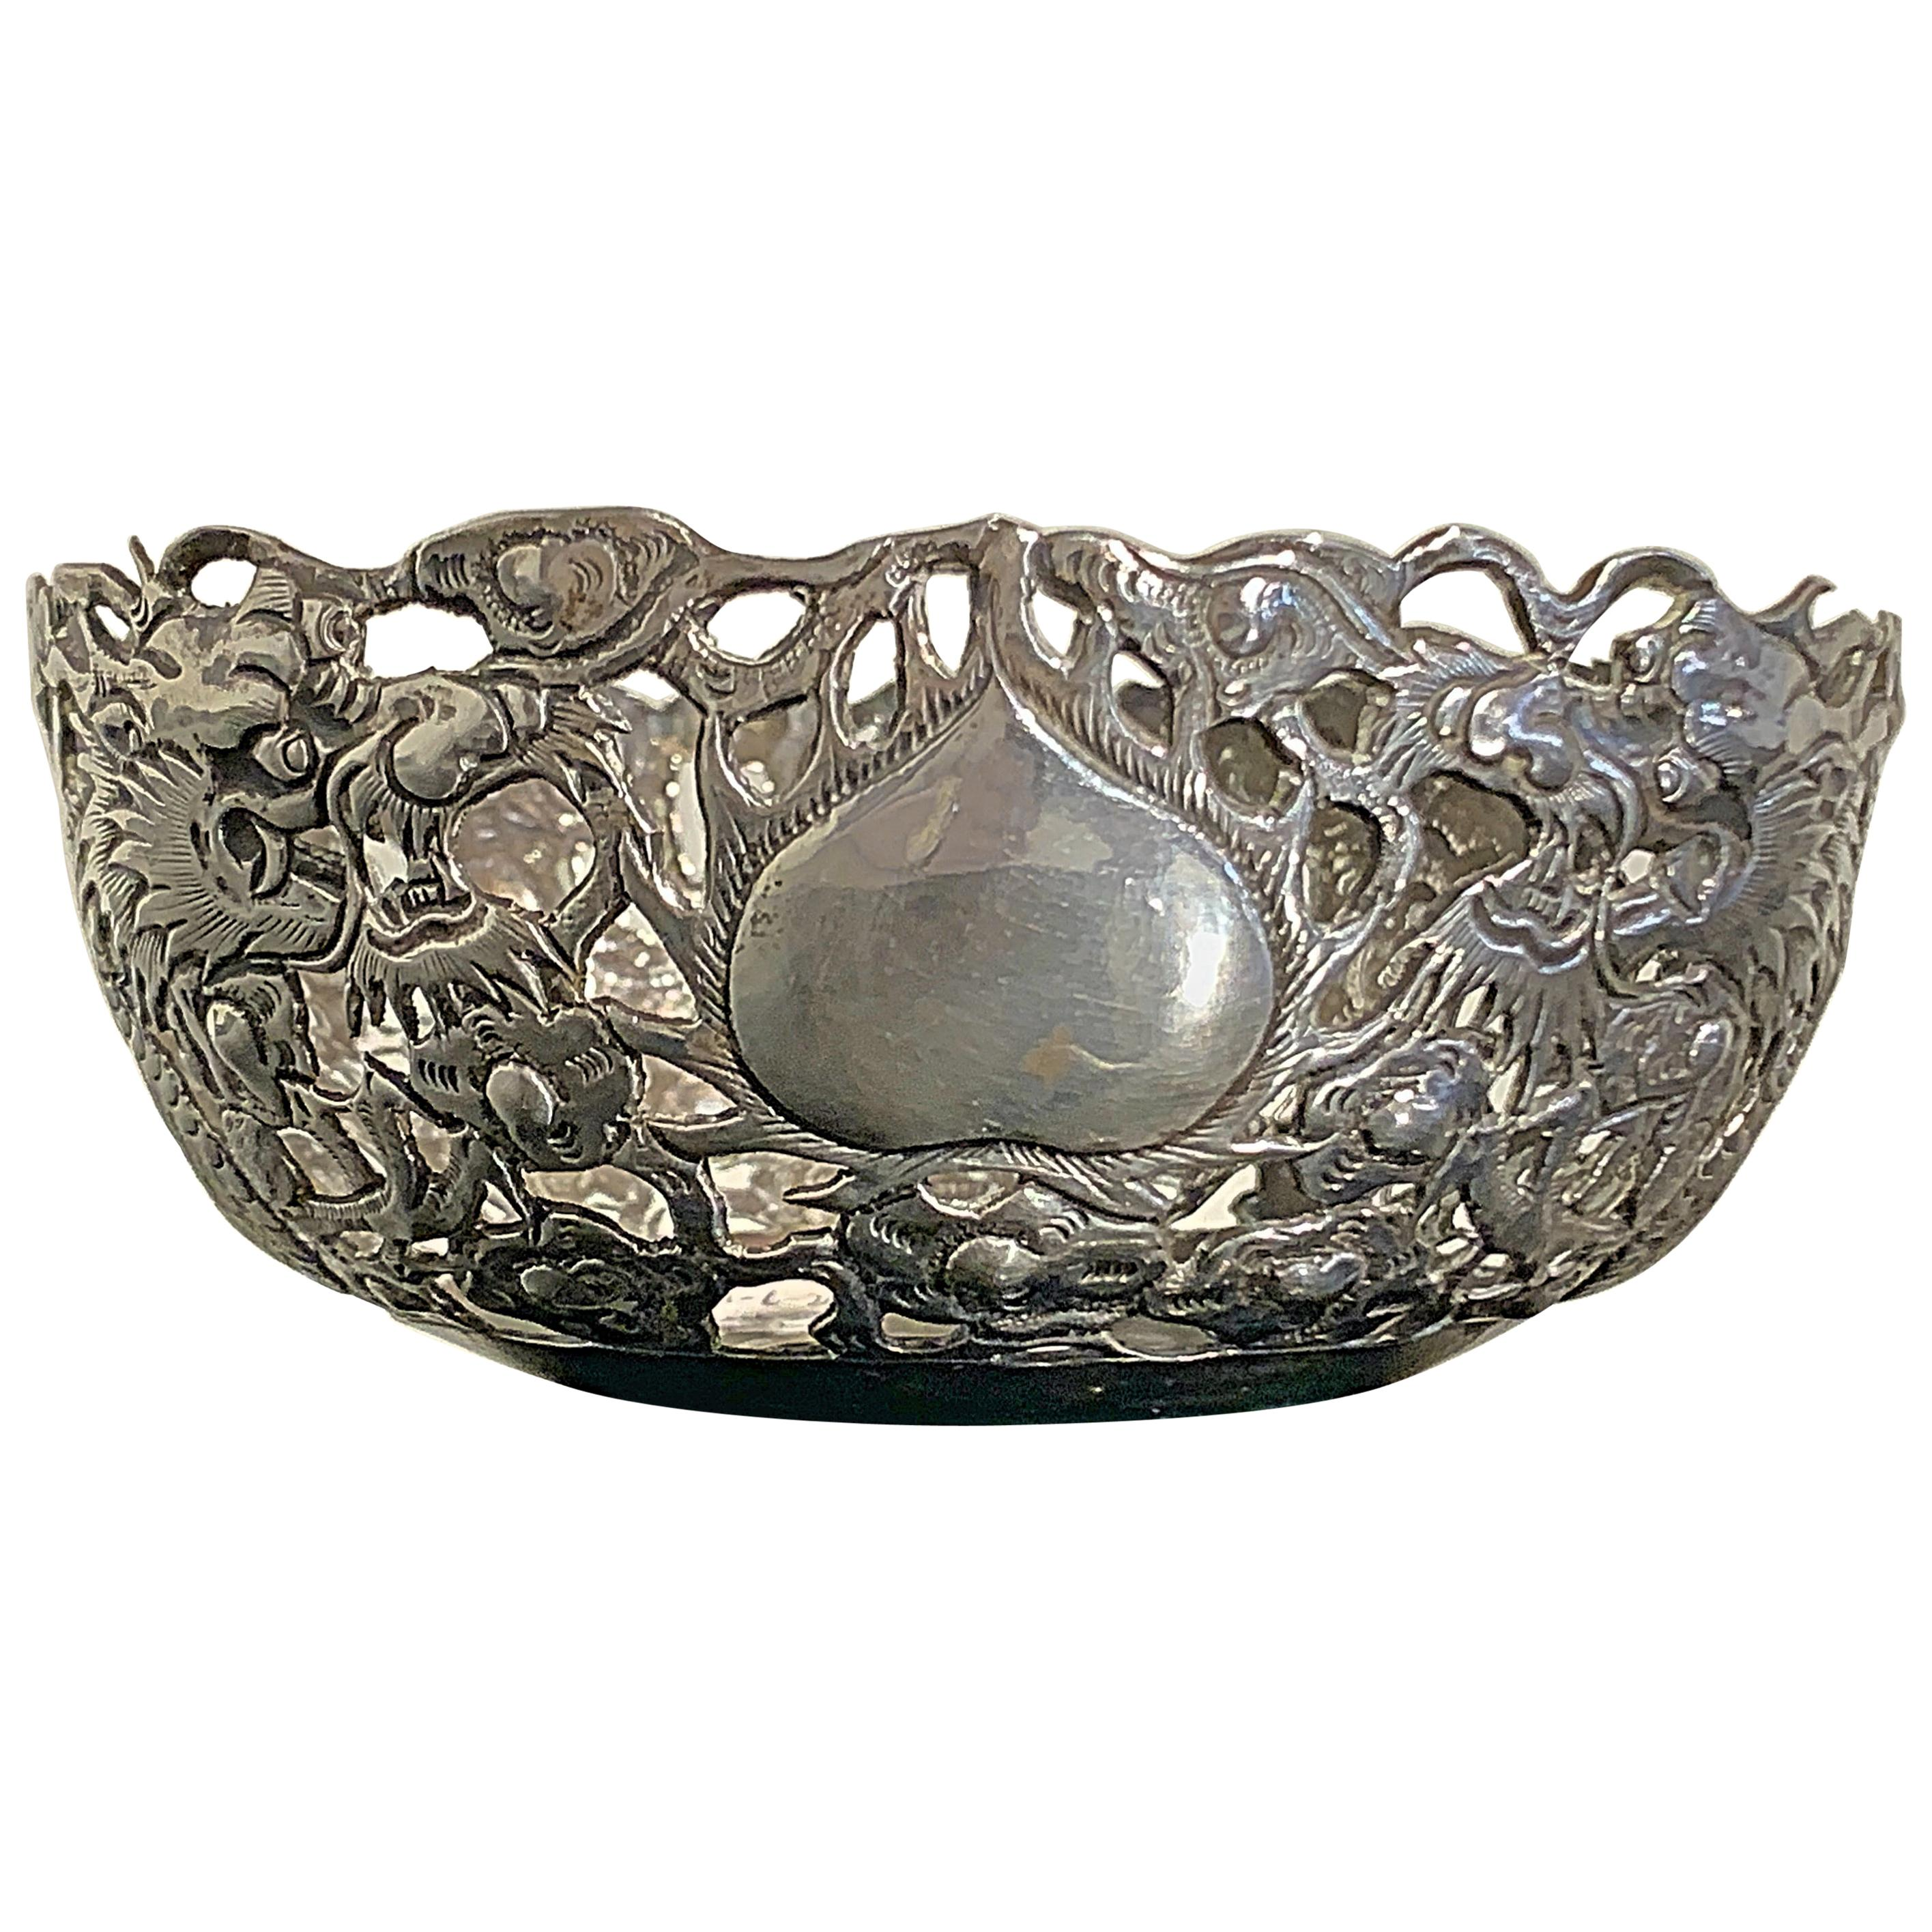 Chinese Export Silver Dragon Bowl, Marked KK, Early 20th Century, China